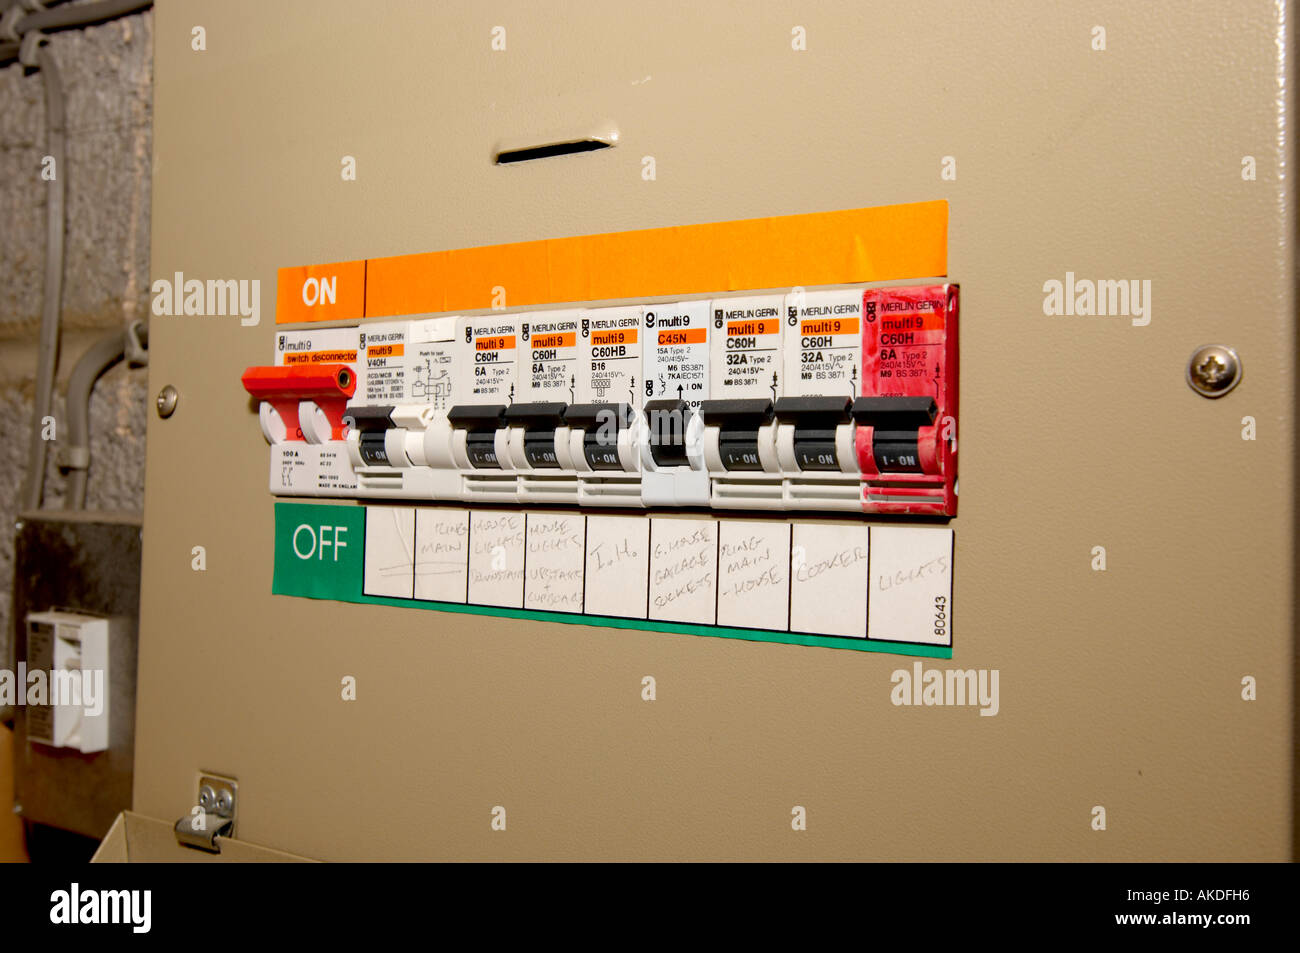 circuit breaker fuse box - fusebox and wiring diagram series-close -  series-close.paoloemartina.it  diagram database - paoloemartina.it